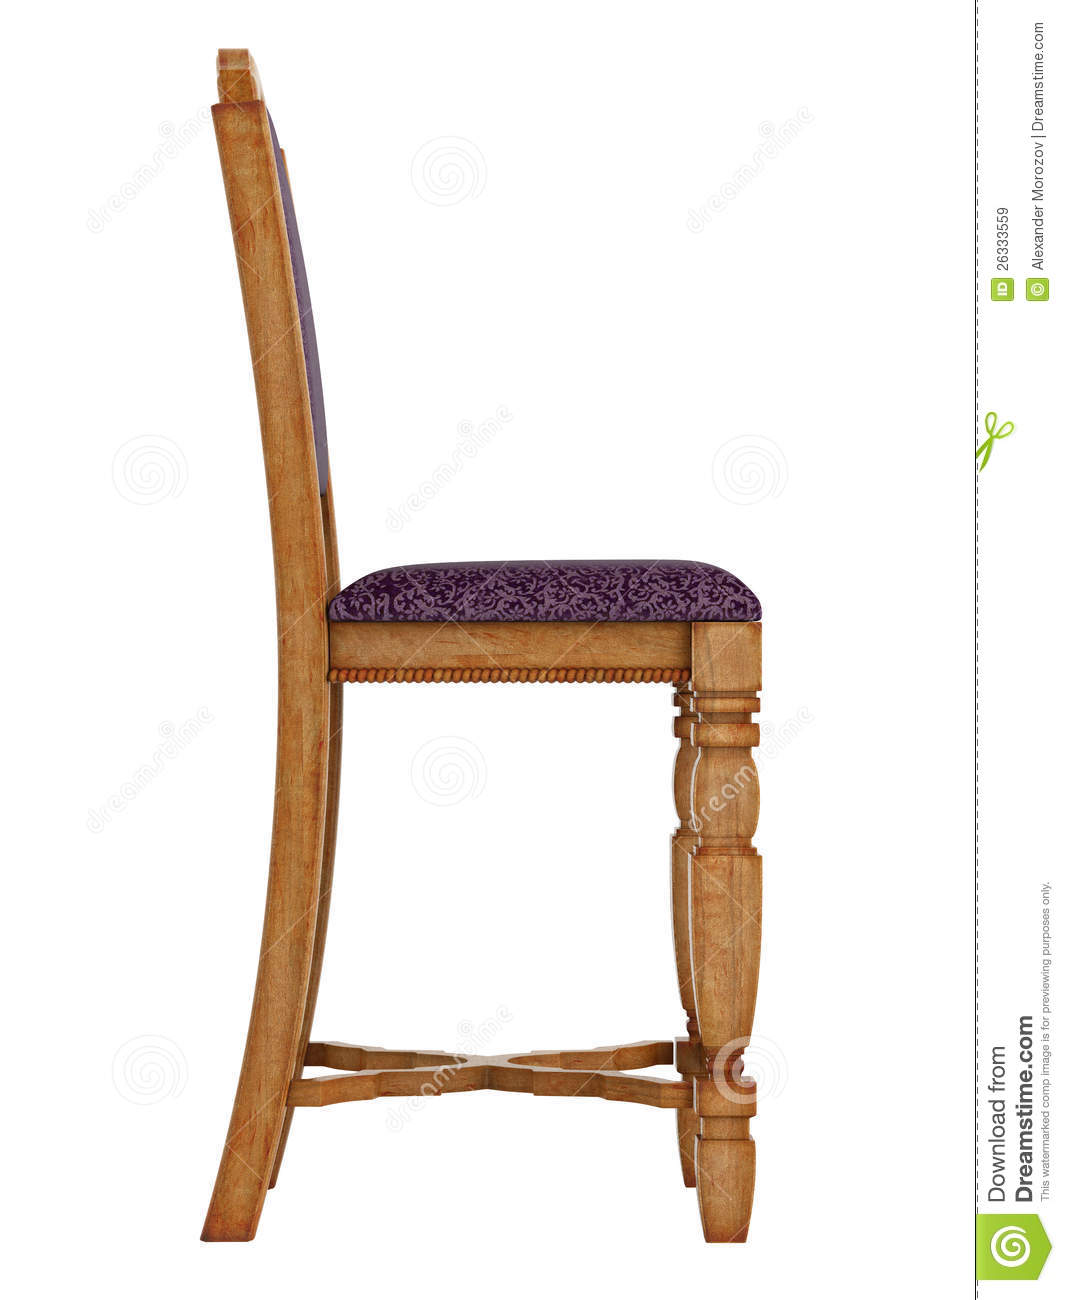 Superb img of Antique Wooden Chair Royalty Free Stock Images Image: 26333559 with #82A229 color and 1065x1300 pixels